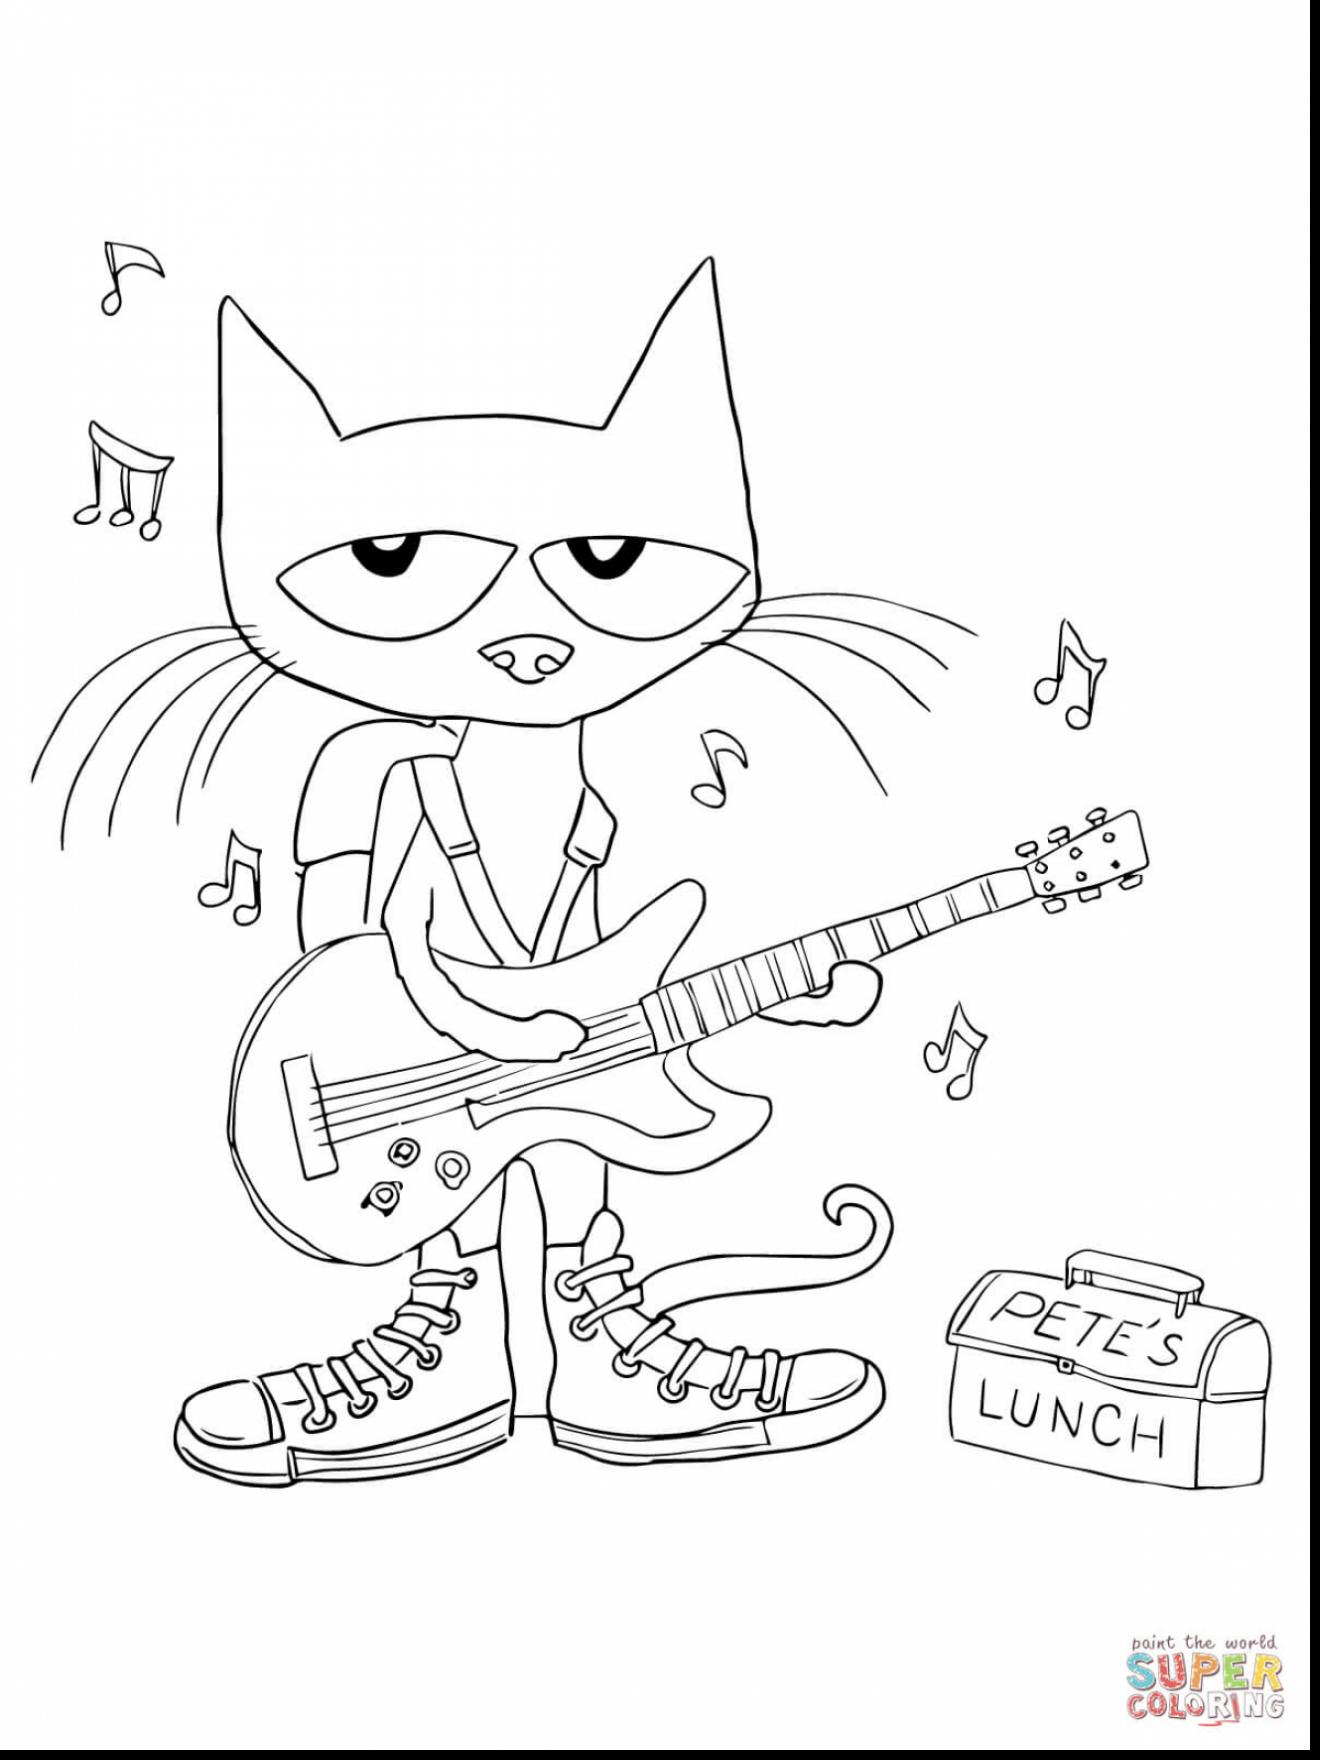 kd coloring pages kid coloring pages to download and print for free coloring pages kd